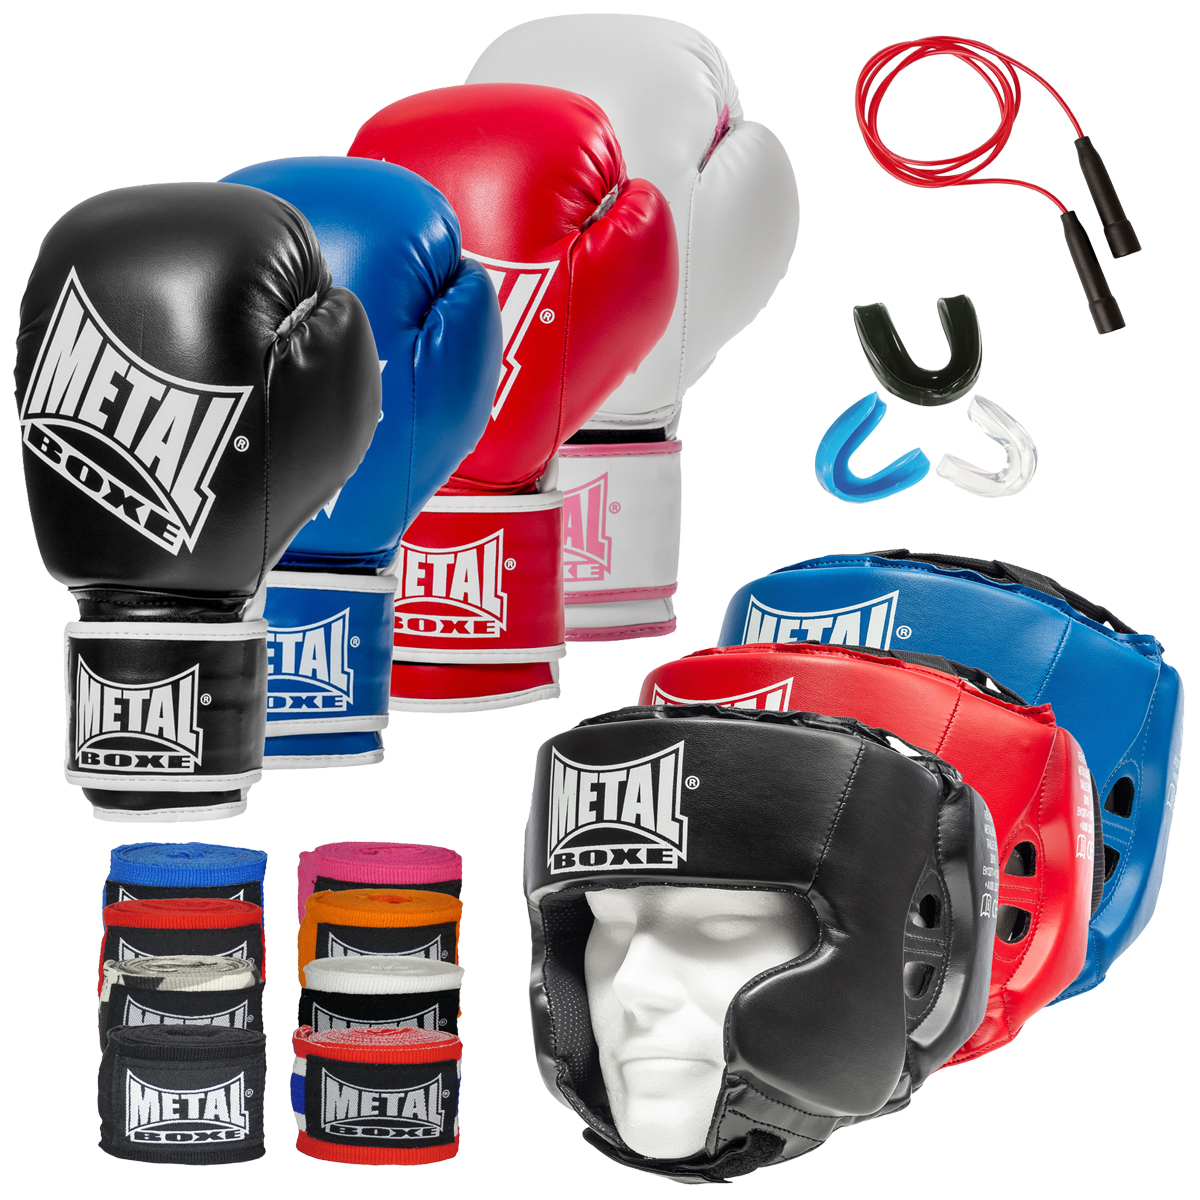 Pack Boxe Anglaise Adulte Complet